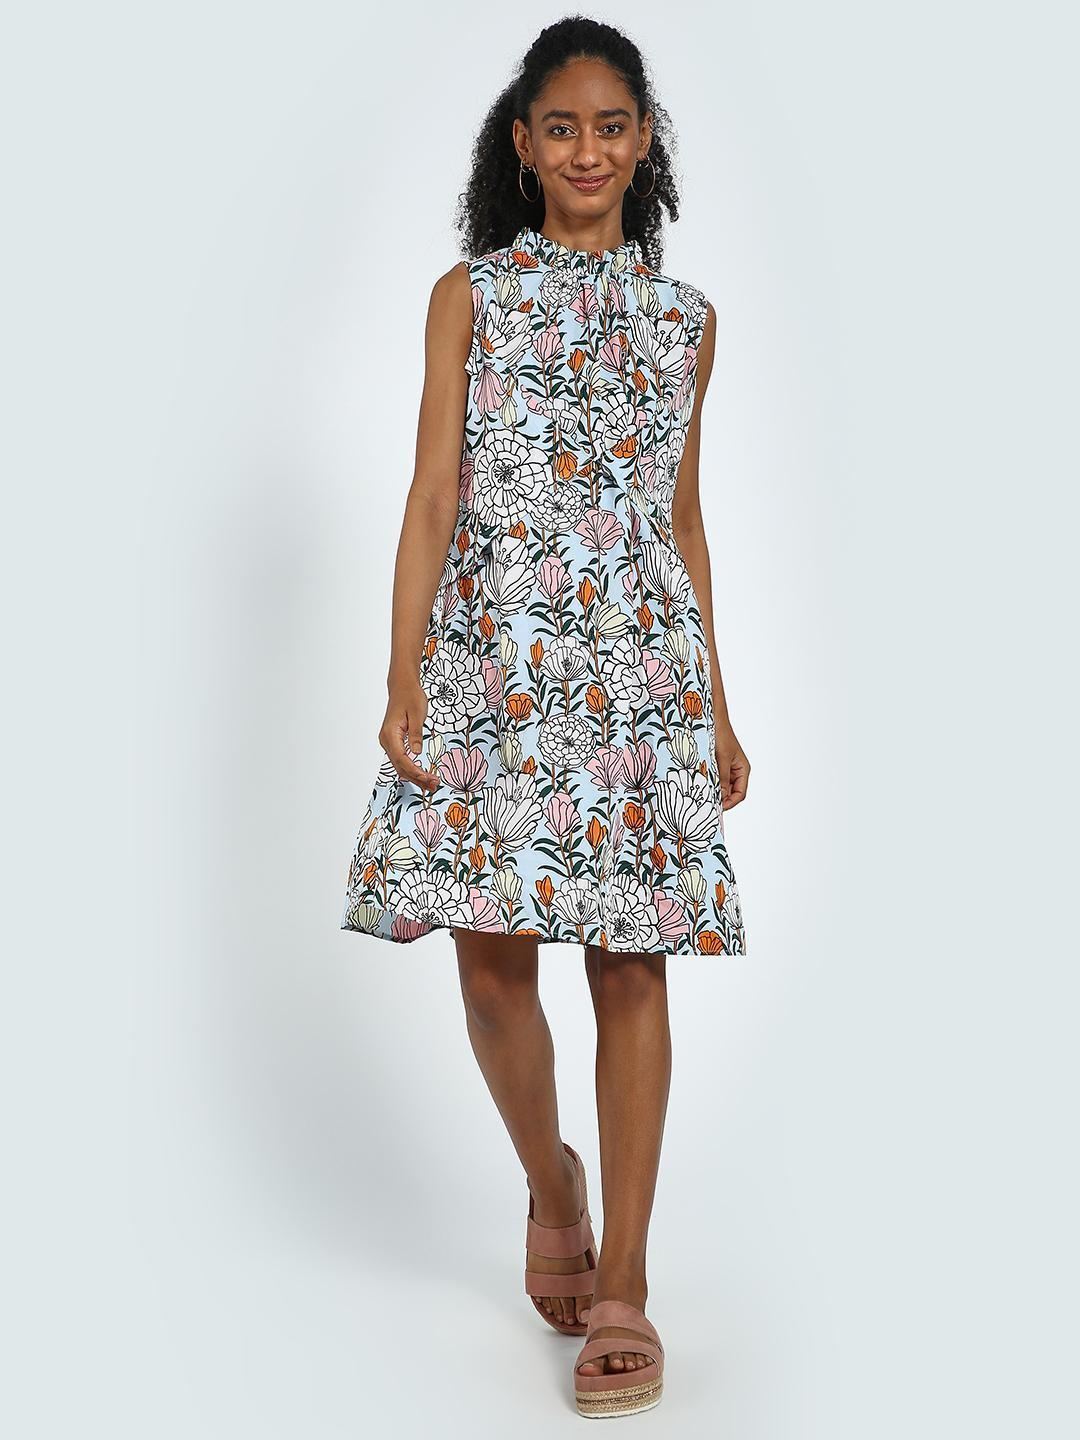 Blue Saint Multi Floral Print Ruffled Midi Dress 1